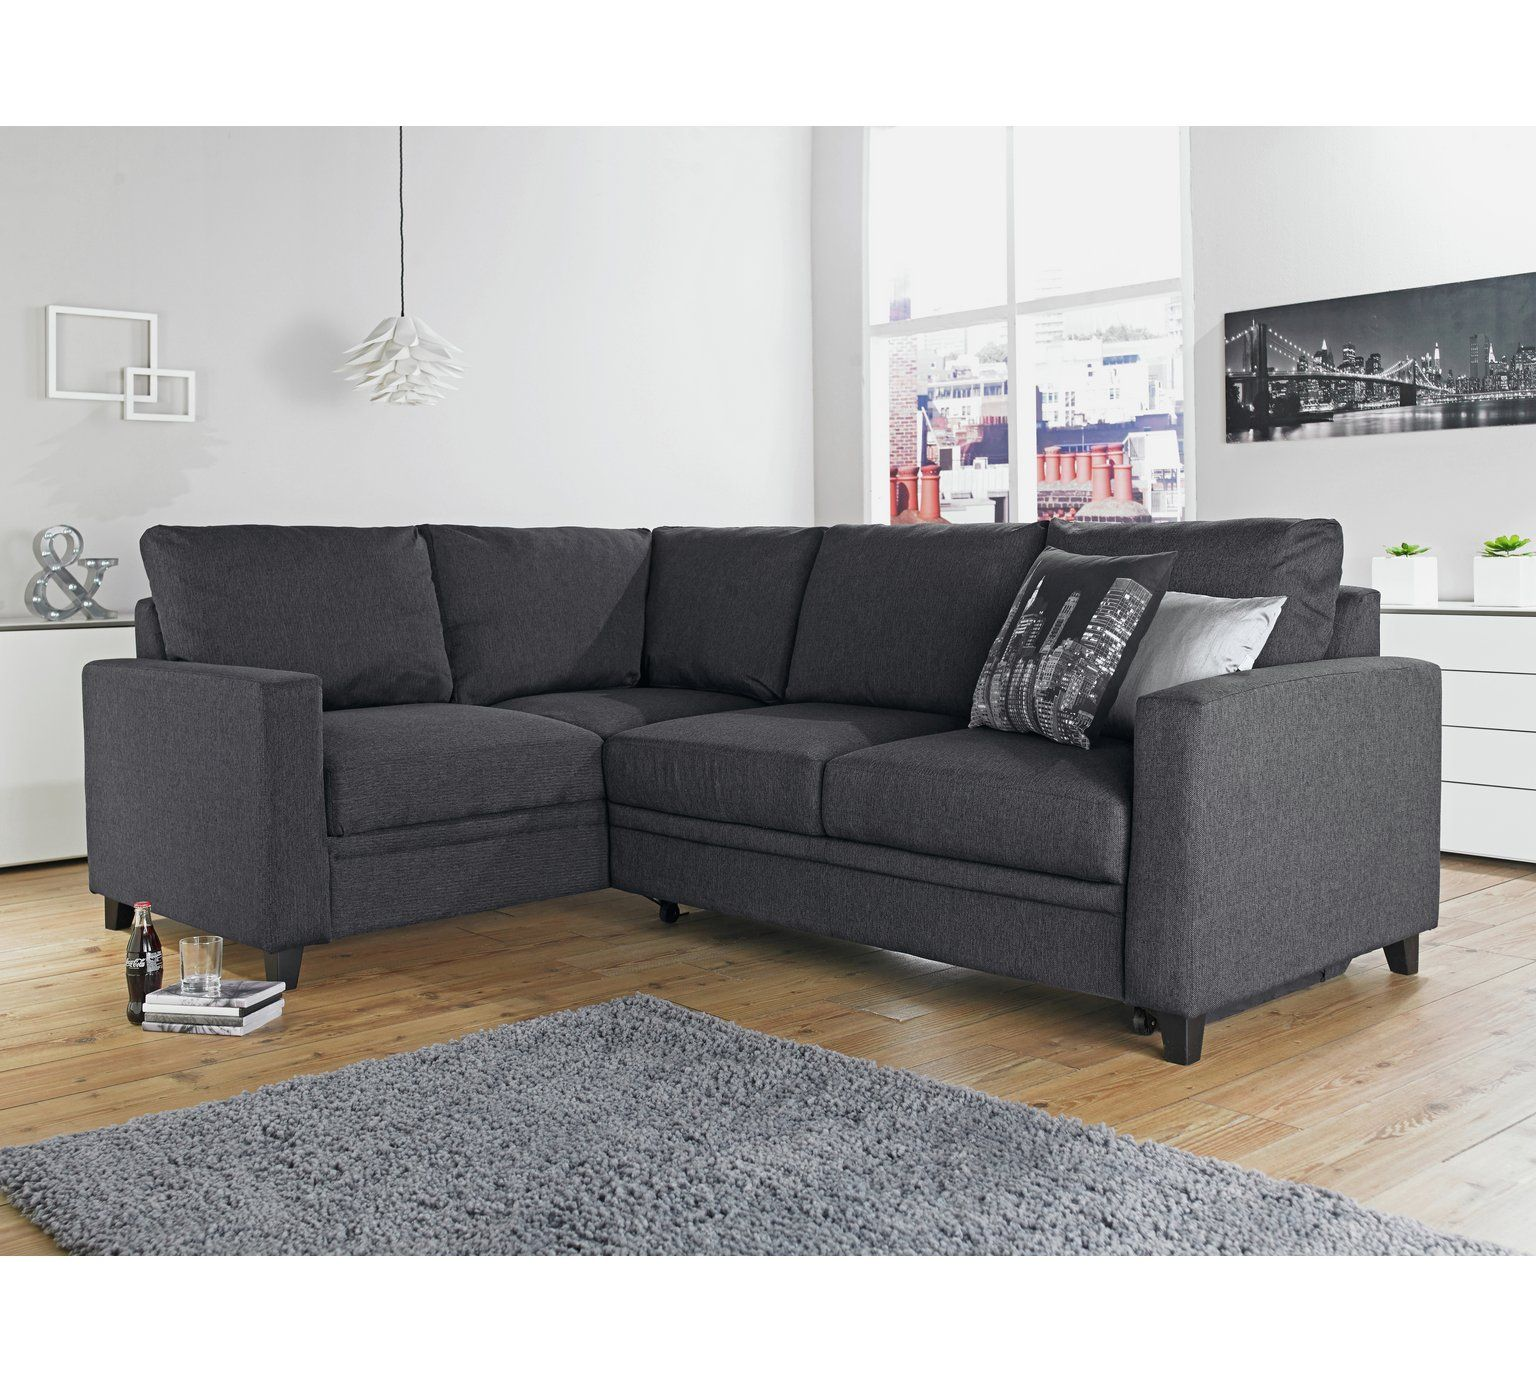 Buy Argos Home Seattle Right Corner Fabric Sofa Bed Charcoal Sofa Beds Argos Fabric Sofa Bed Corner Sofa Bed Sofa